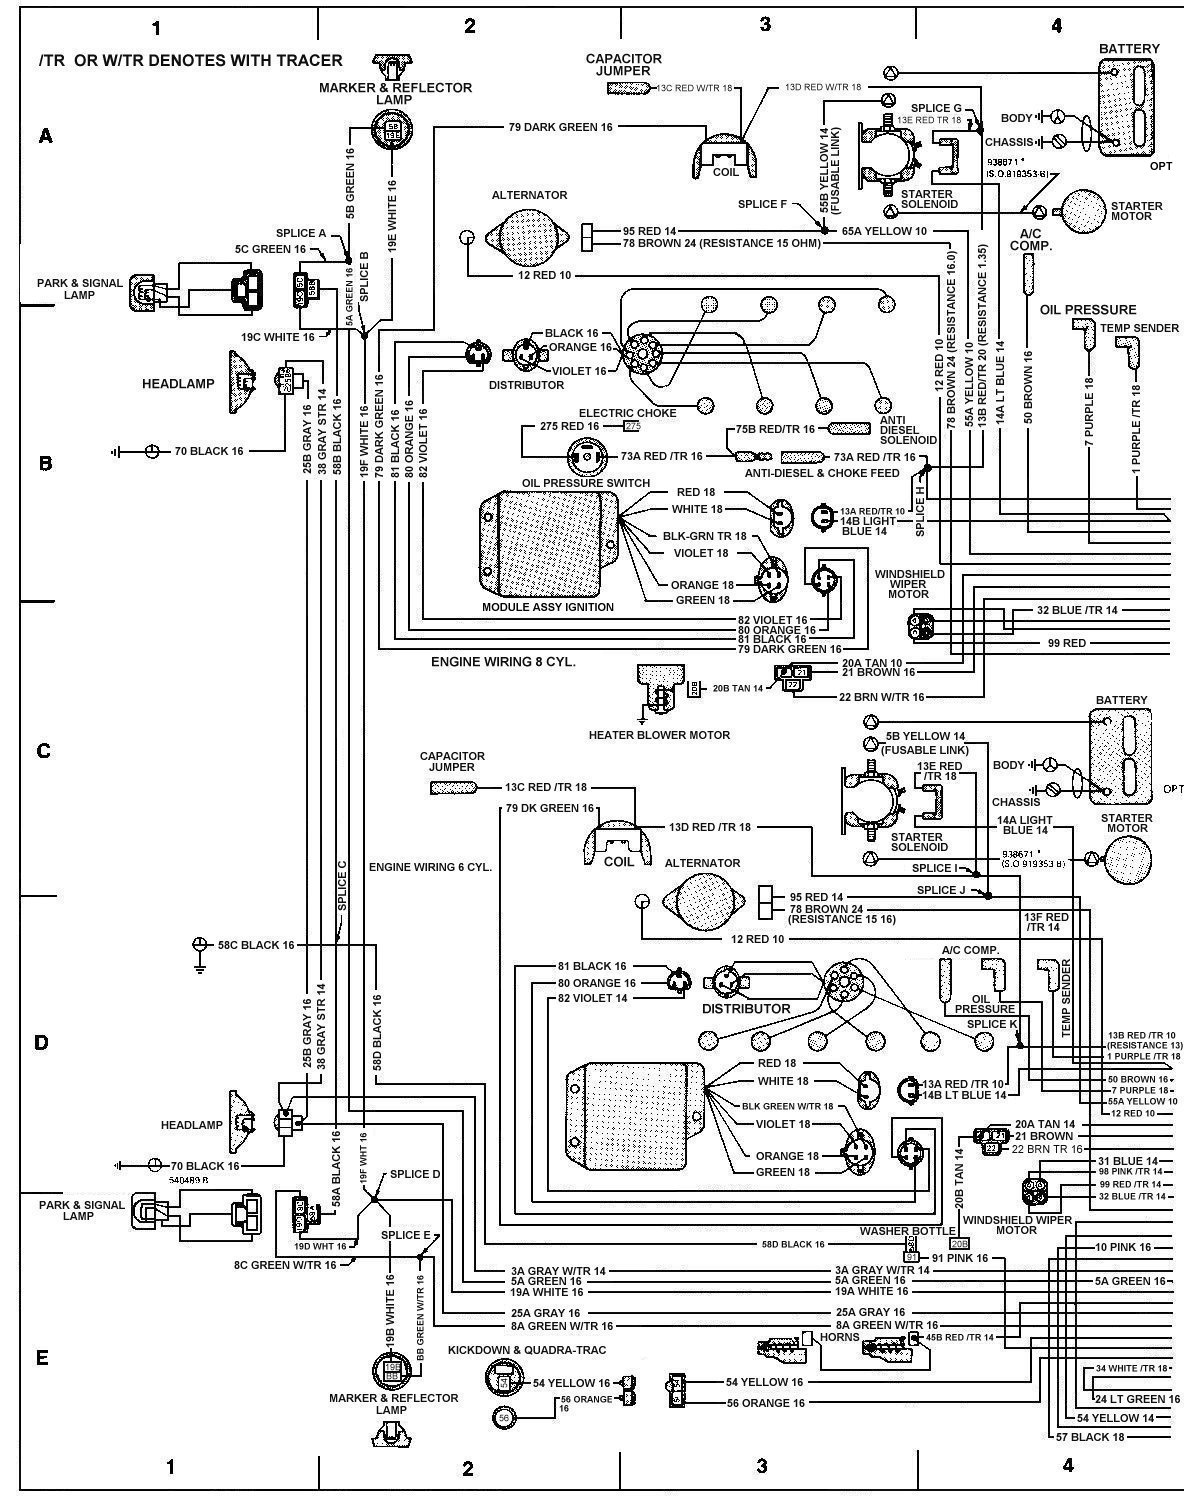 1982 Jeep J 20 Ignition Wiring Diagram Content Resource Of 1977 Cj5 J20 Detailed Schematics Rh Lelandlutheran Com 93